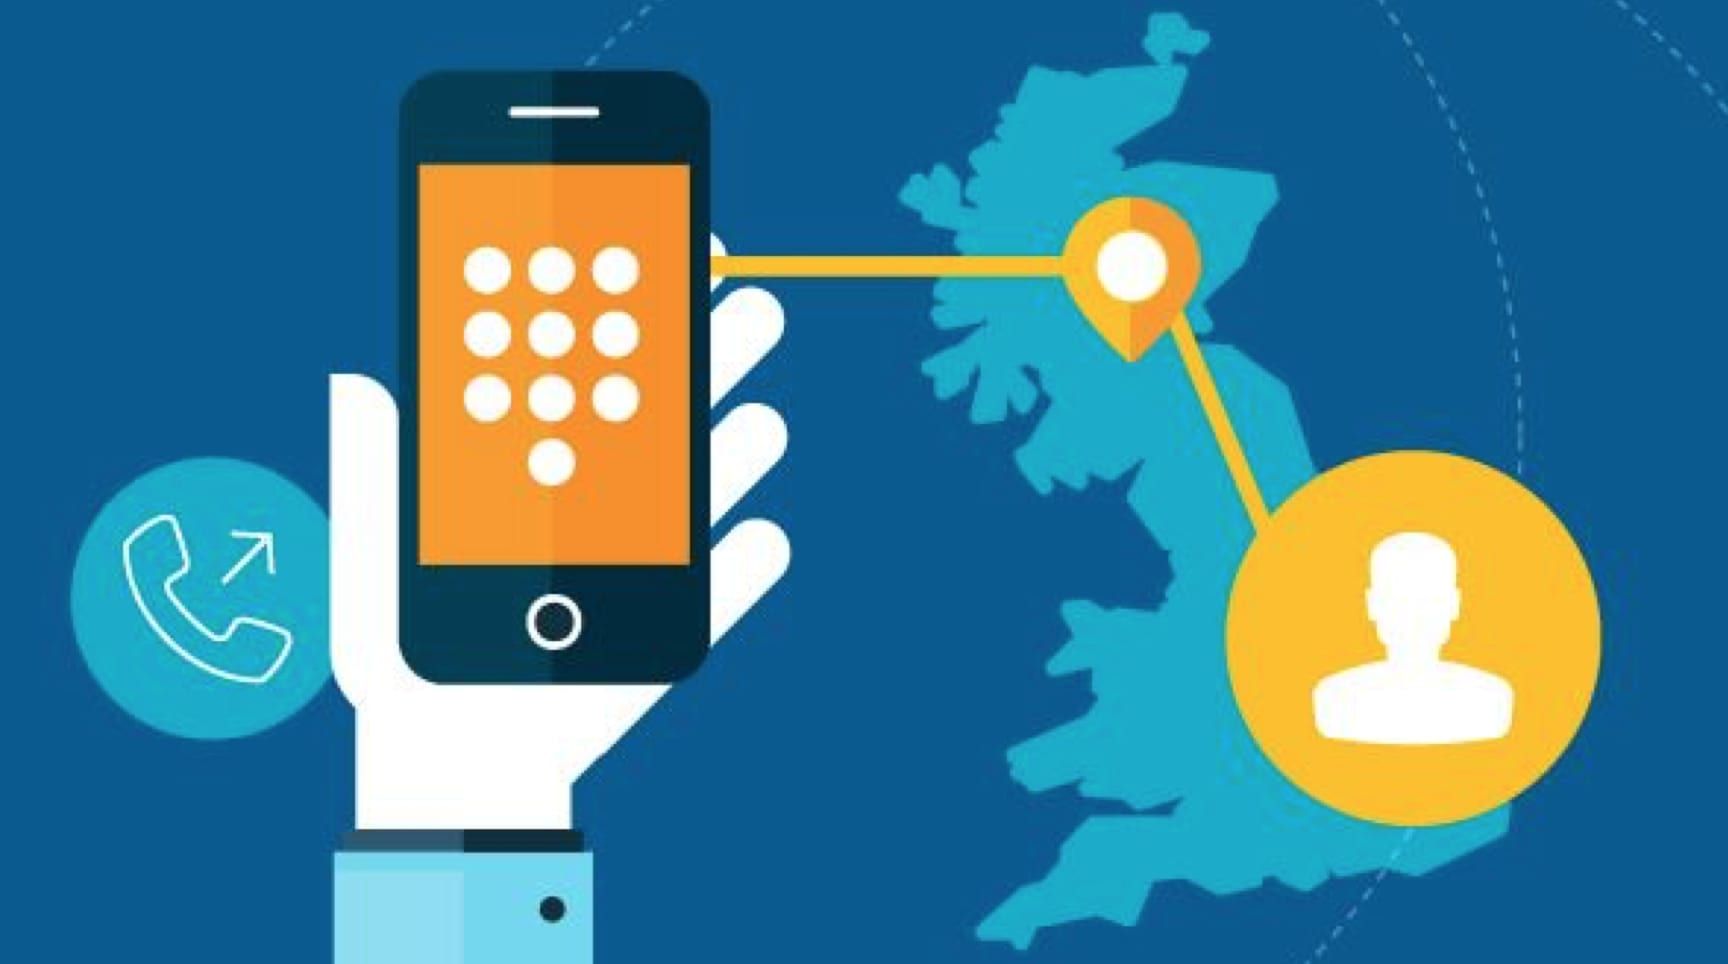 Businesses Profiting with a Virtual Phone Number in the US? - Foreign policy